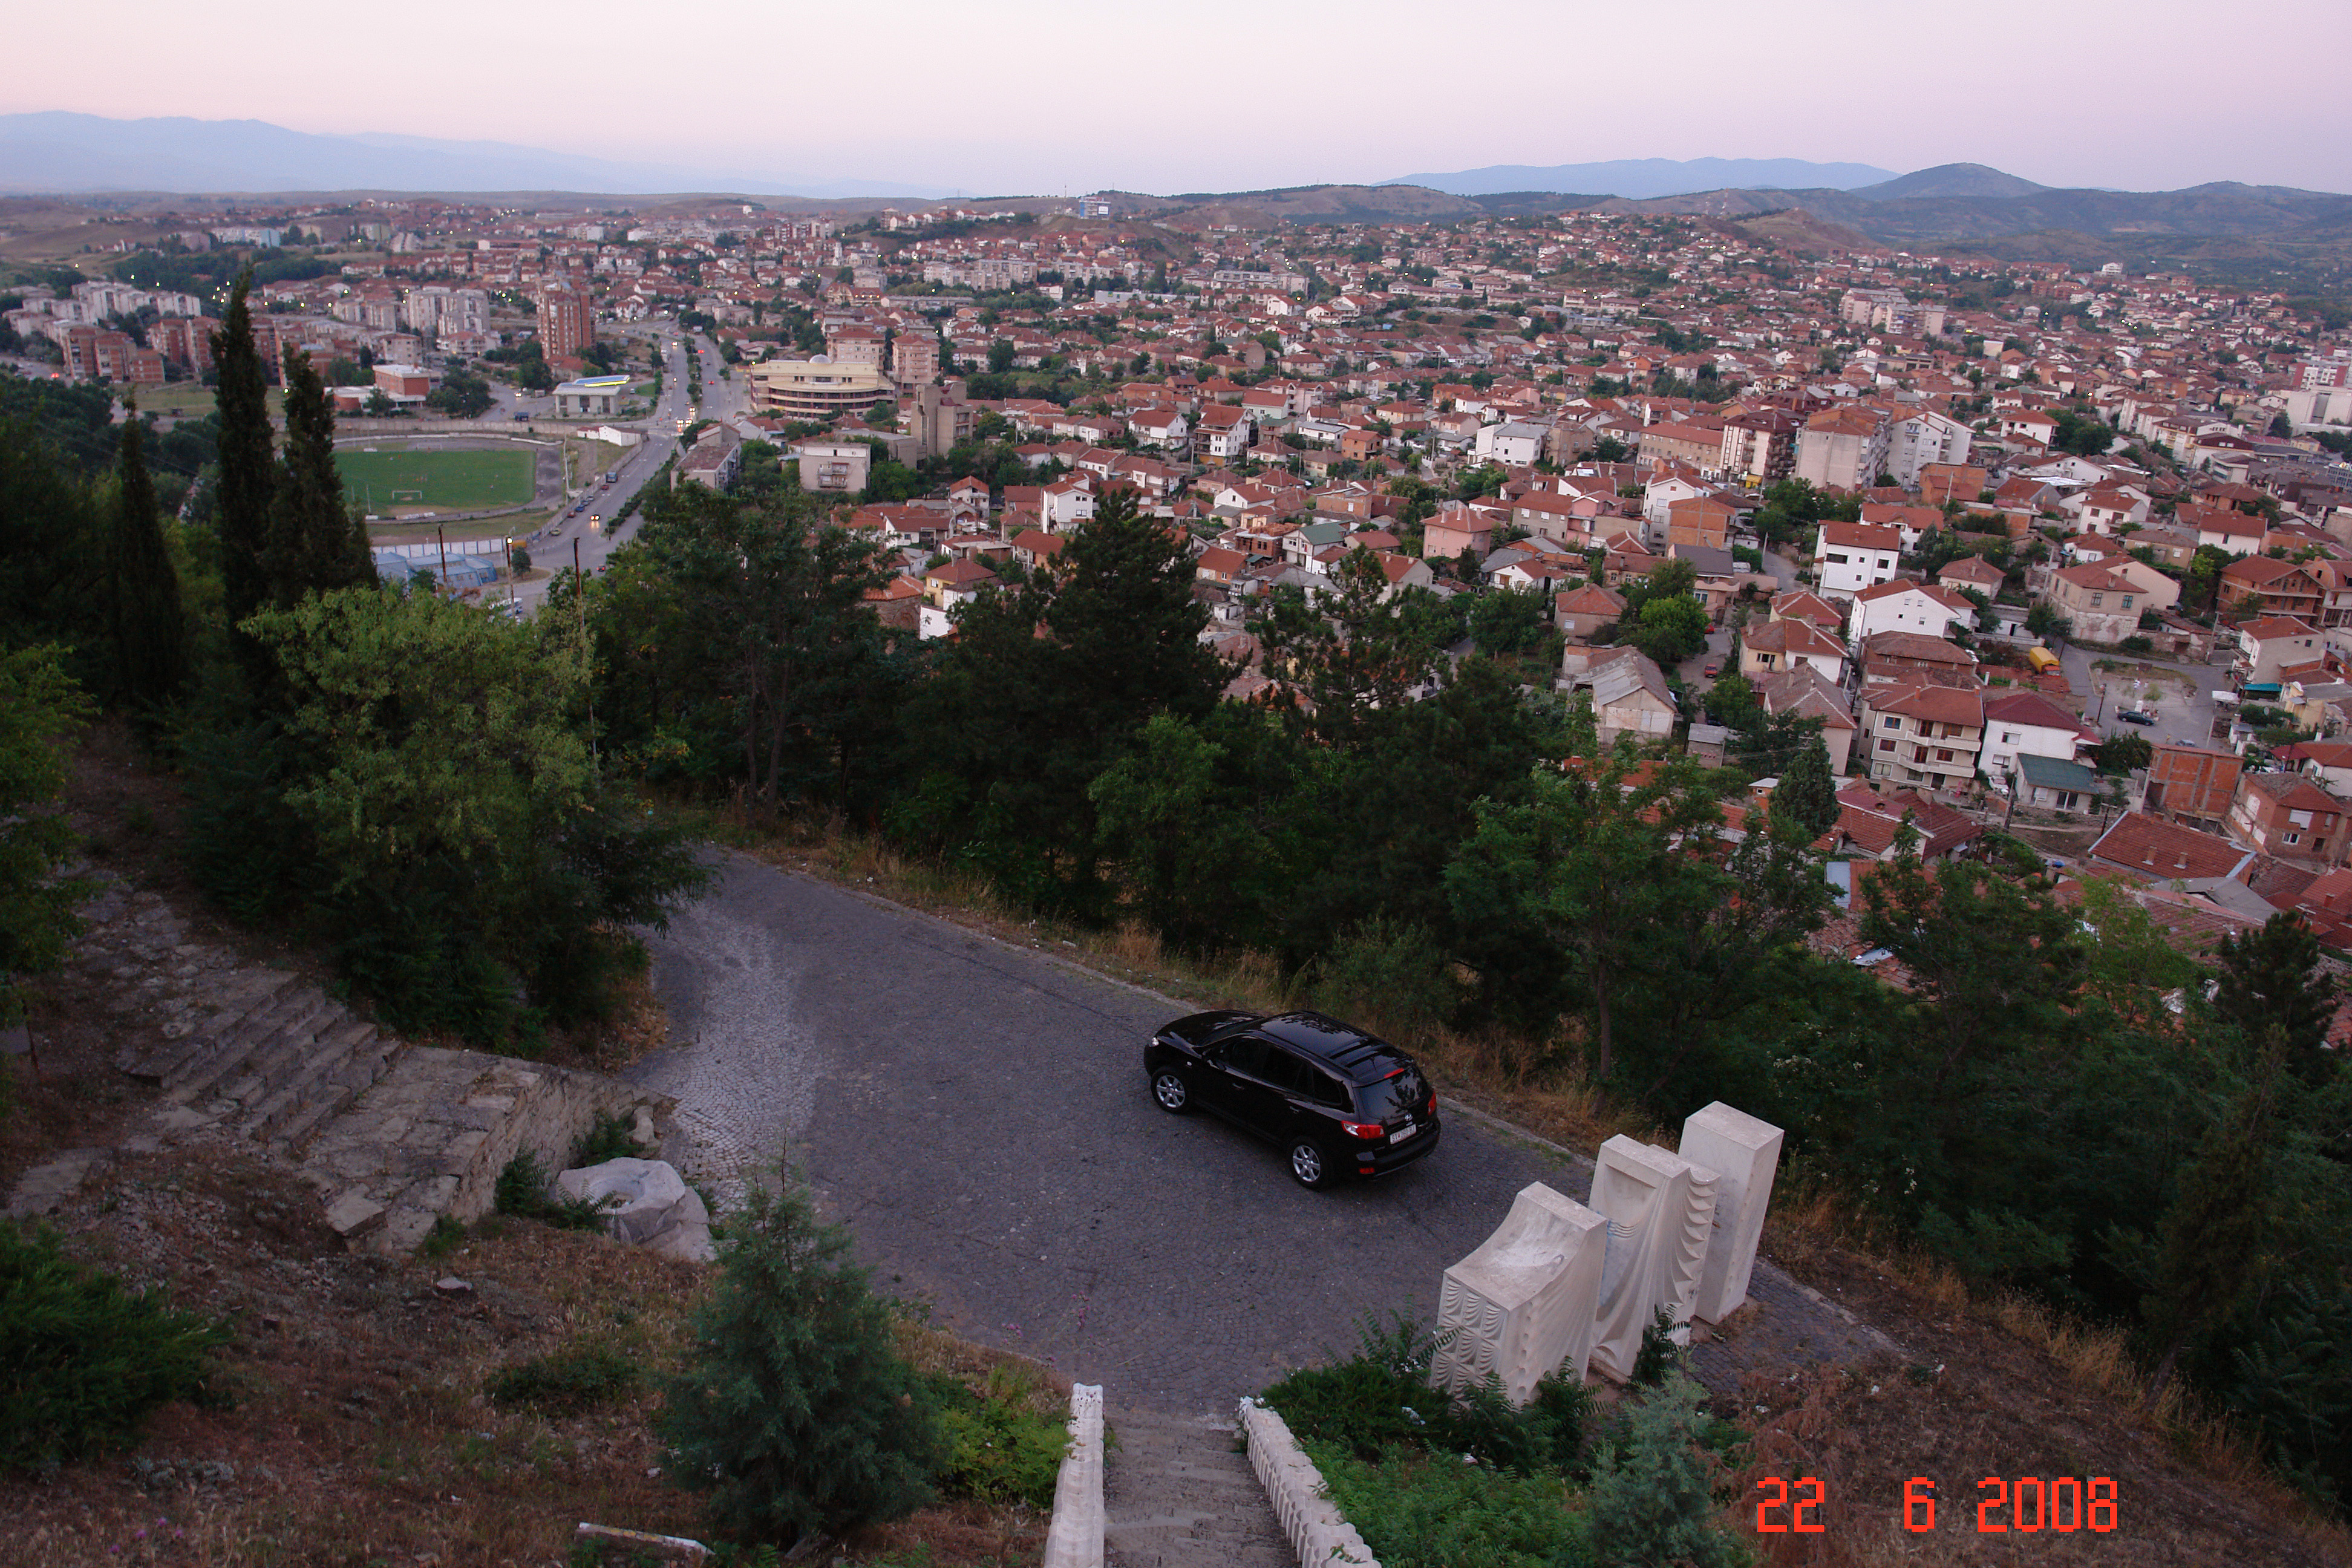 File:Stip Macedonia - Panorama from Isar Hill 1.jpg - Wikipedia, the ...